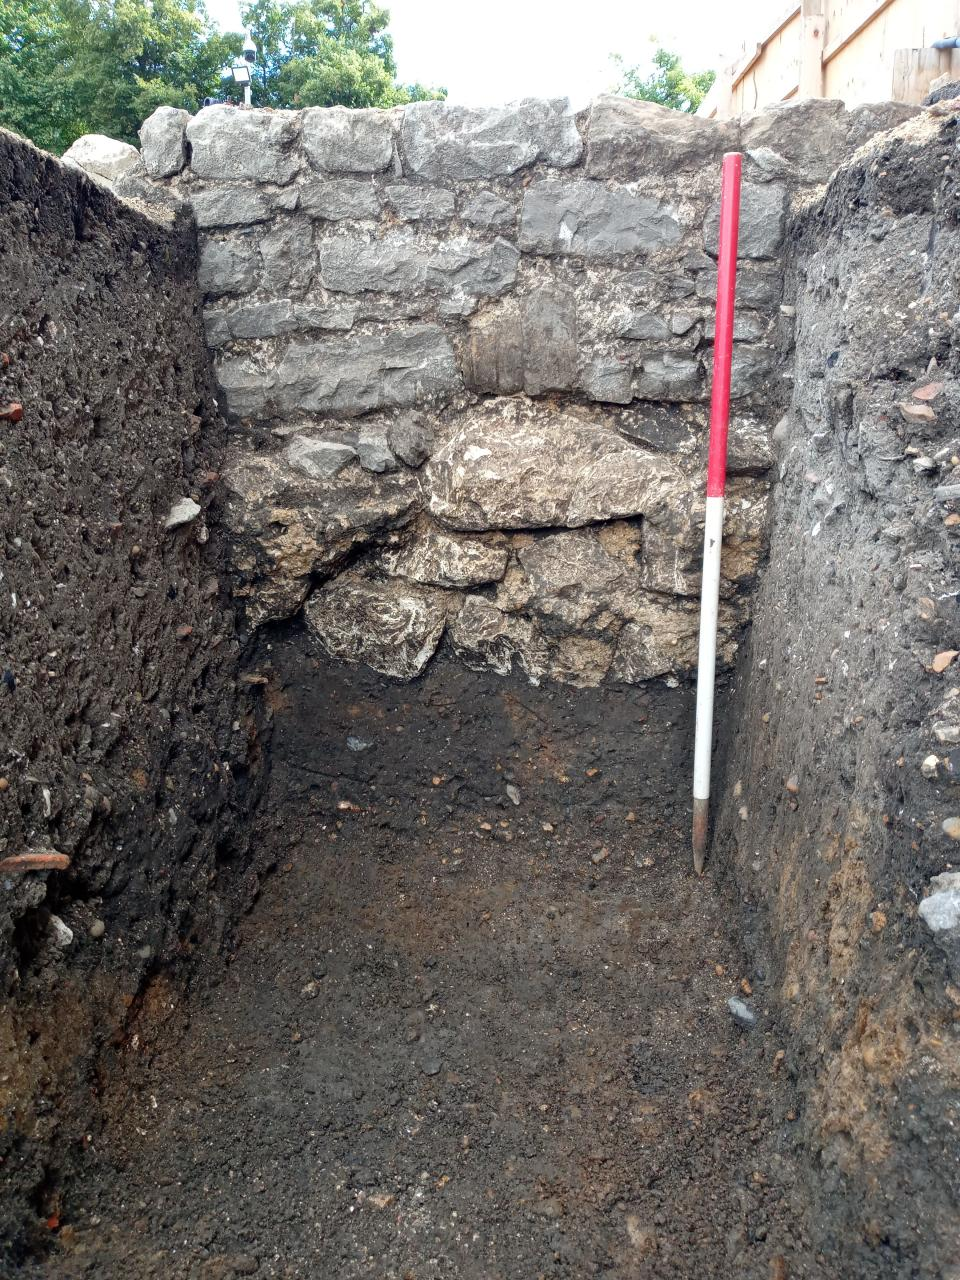 Weston Homes found historic artefacts dating back to the Roman era at its construction site in Barking. Photo: Weston Homes